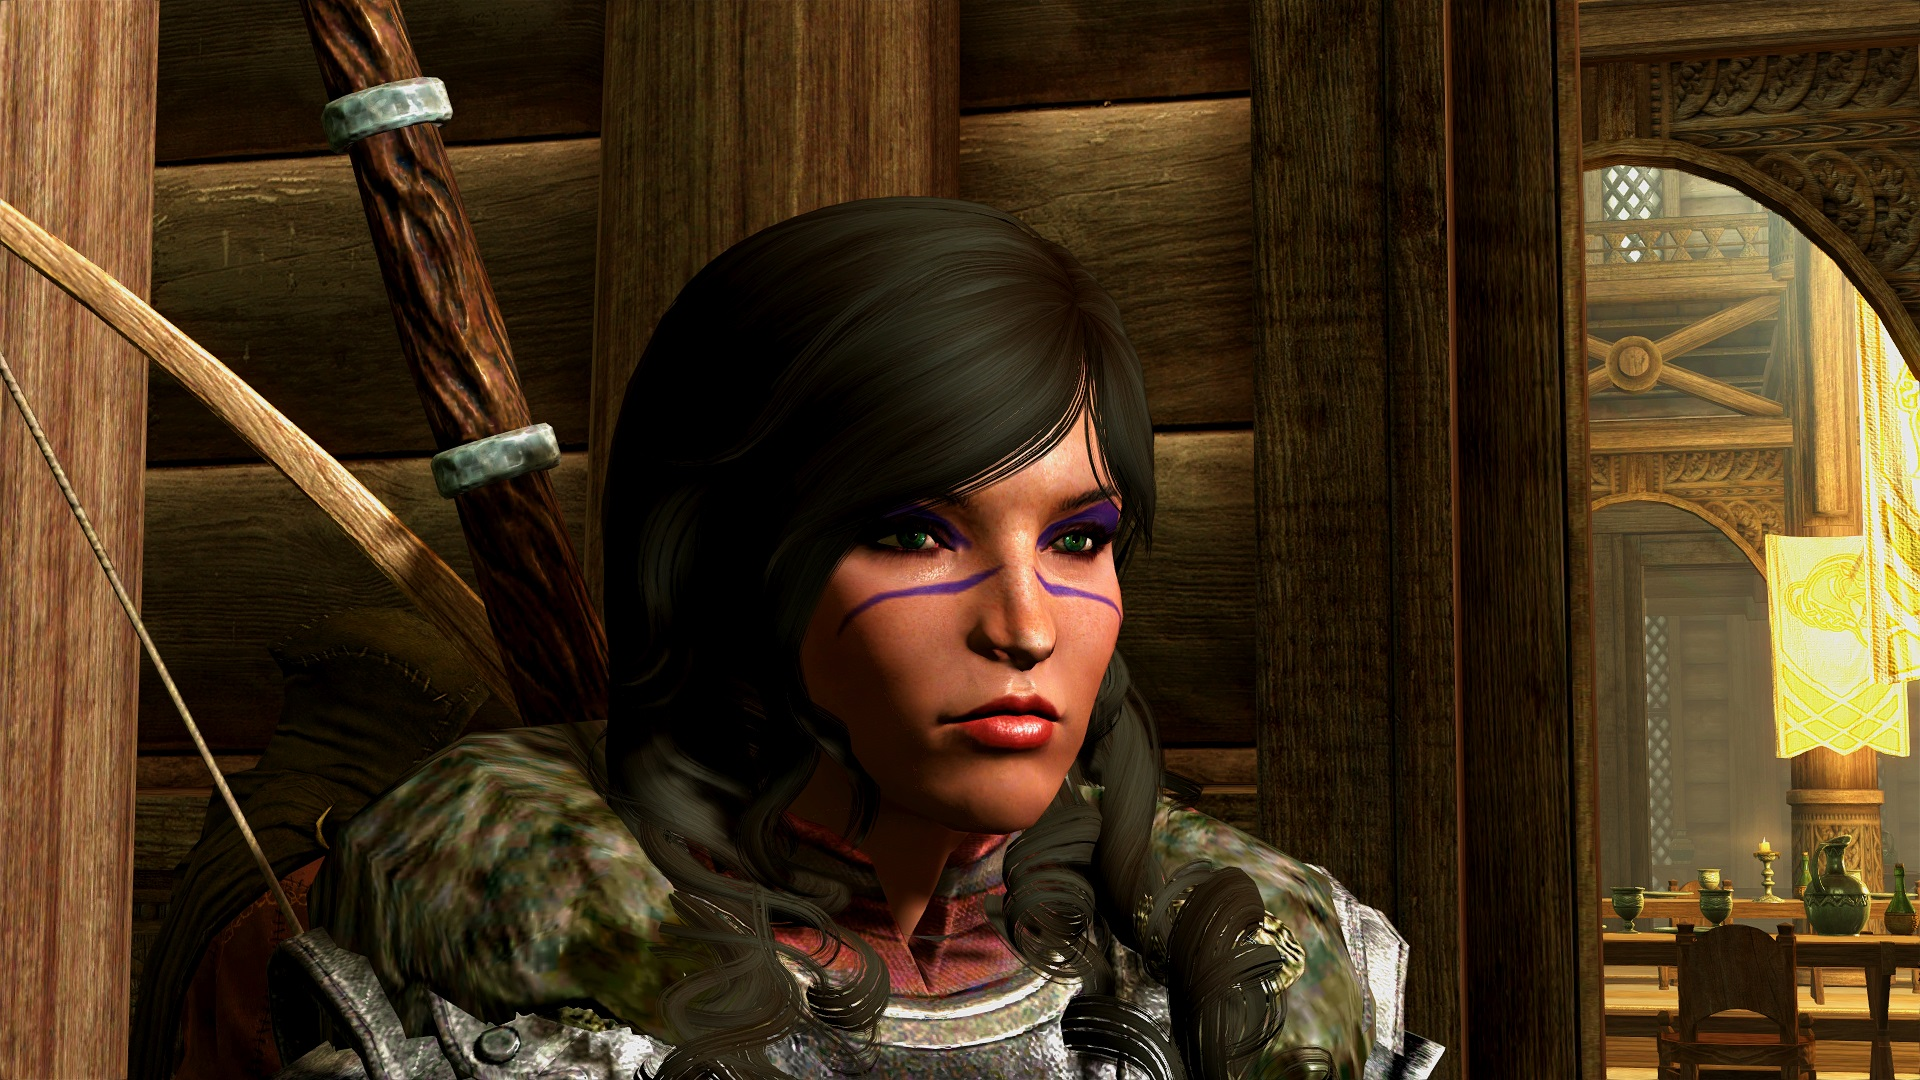 Steam Community Screenshot I M Not Completely Sold On Windsong Character Overhaul Makes Seranaholic 1 5 Look Odd Elves Look A Bit Too Human But Look At Her Chin